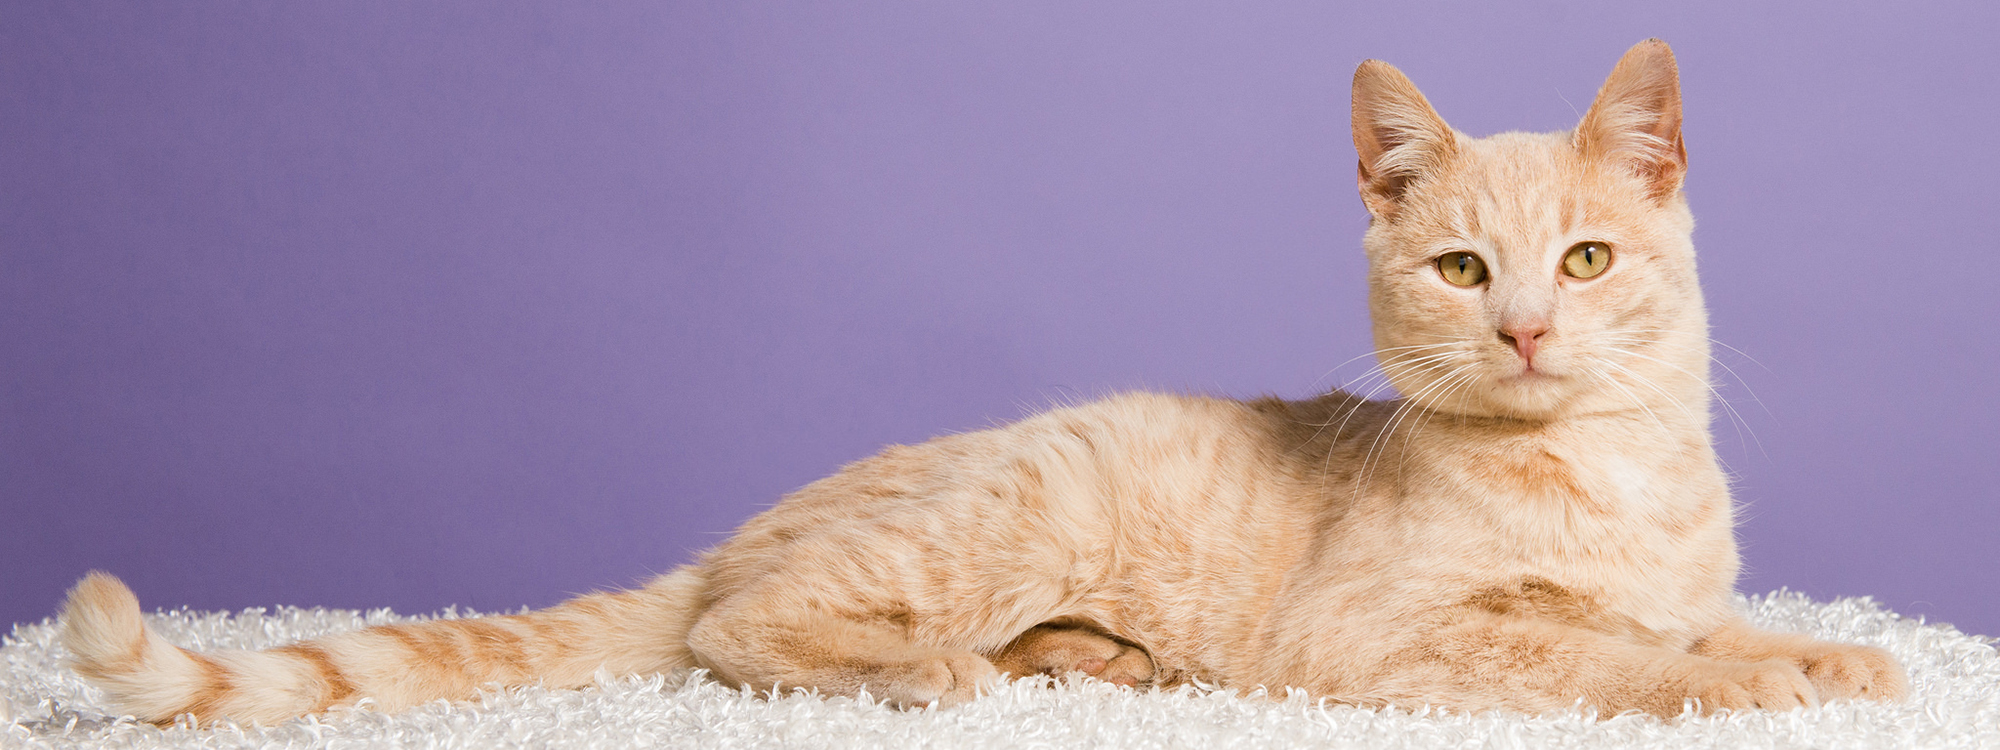 orange cat laying on white rug with purple background